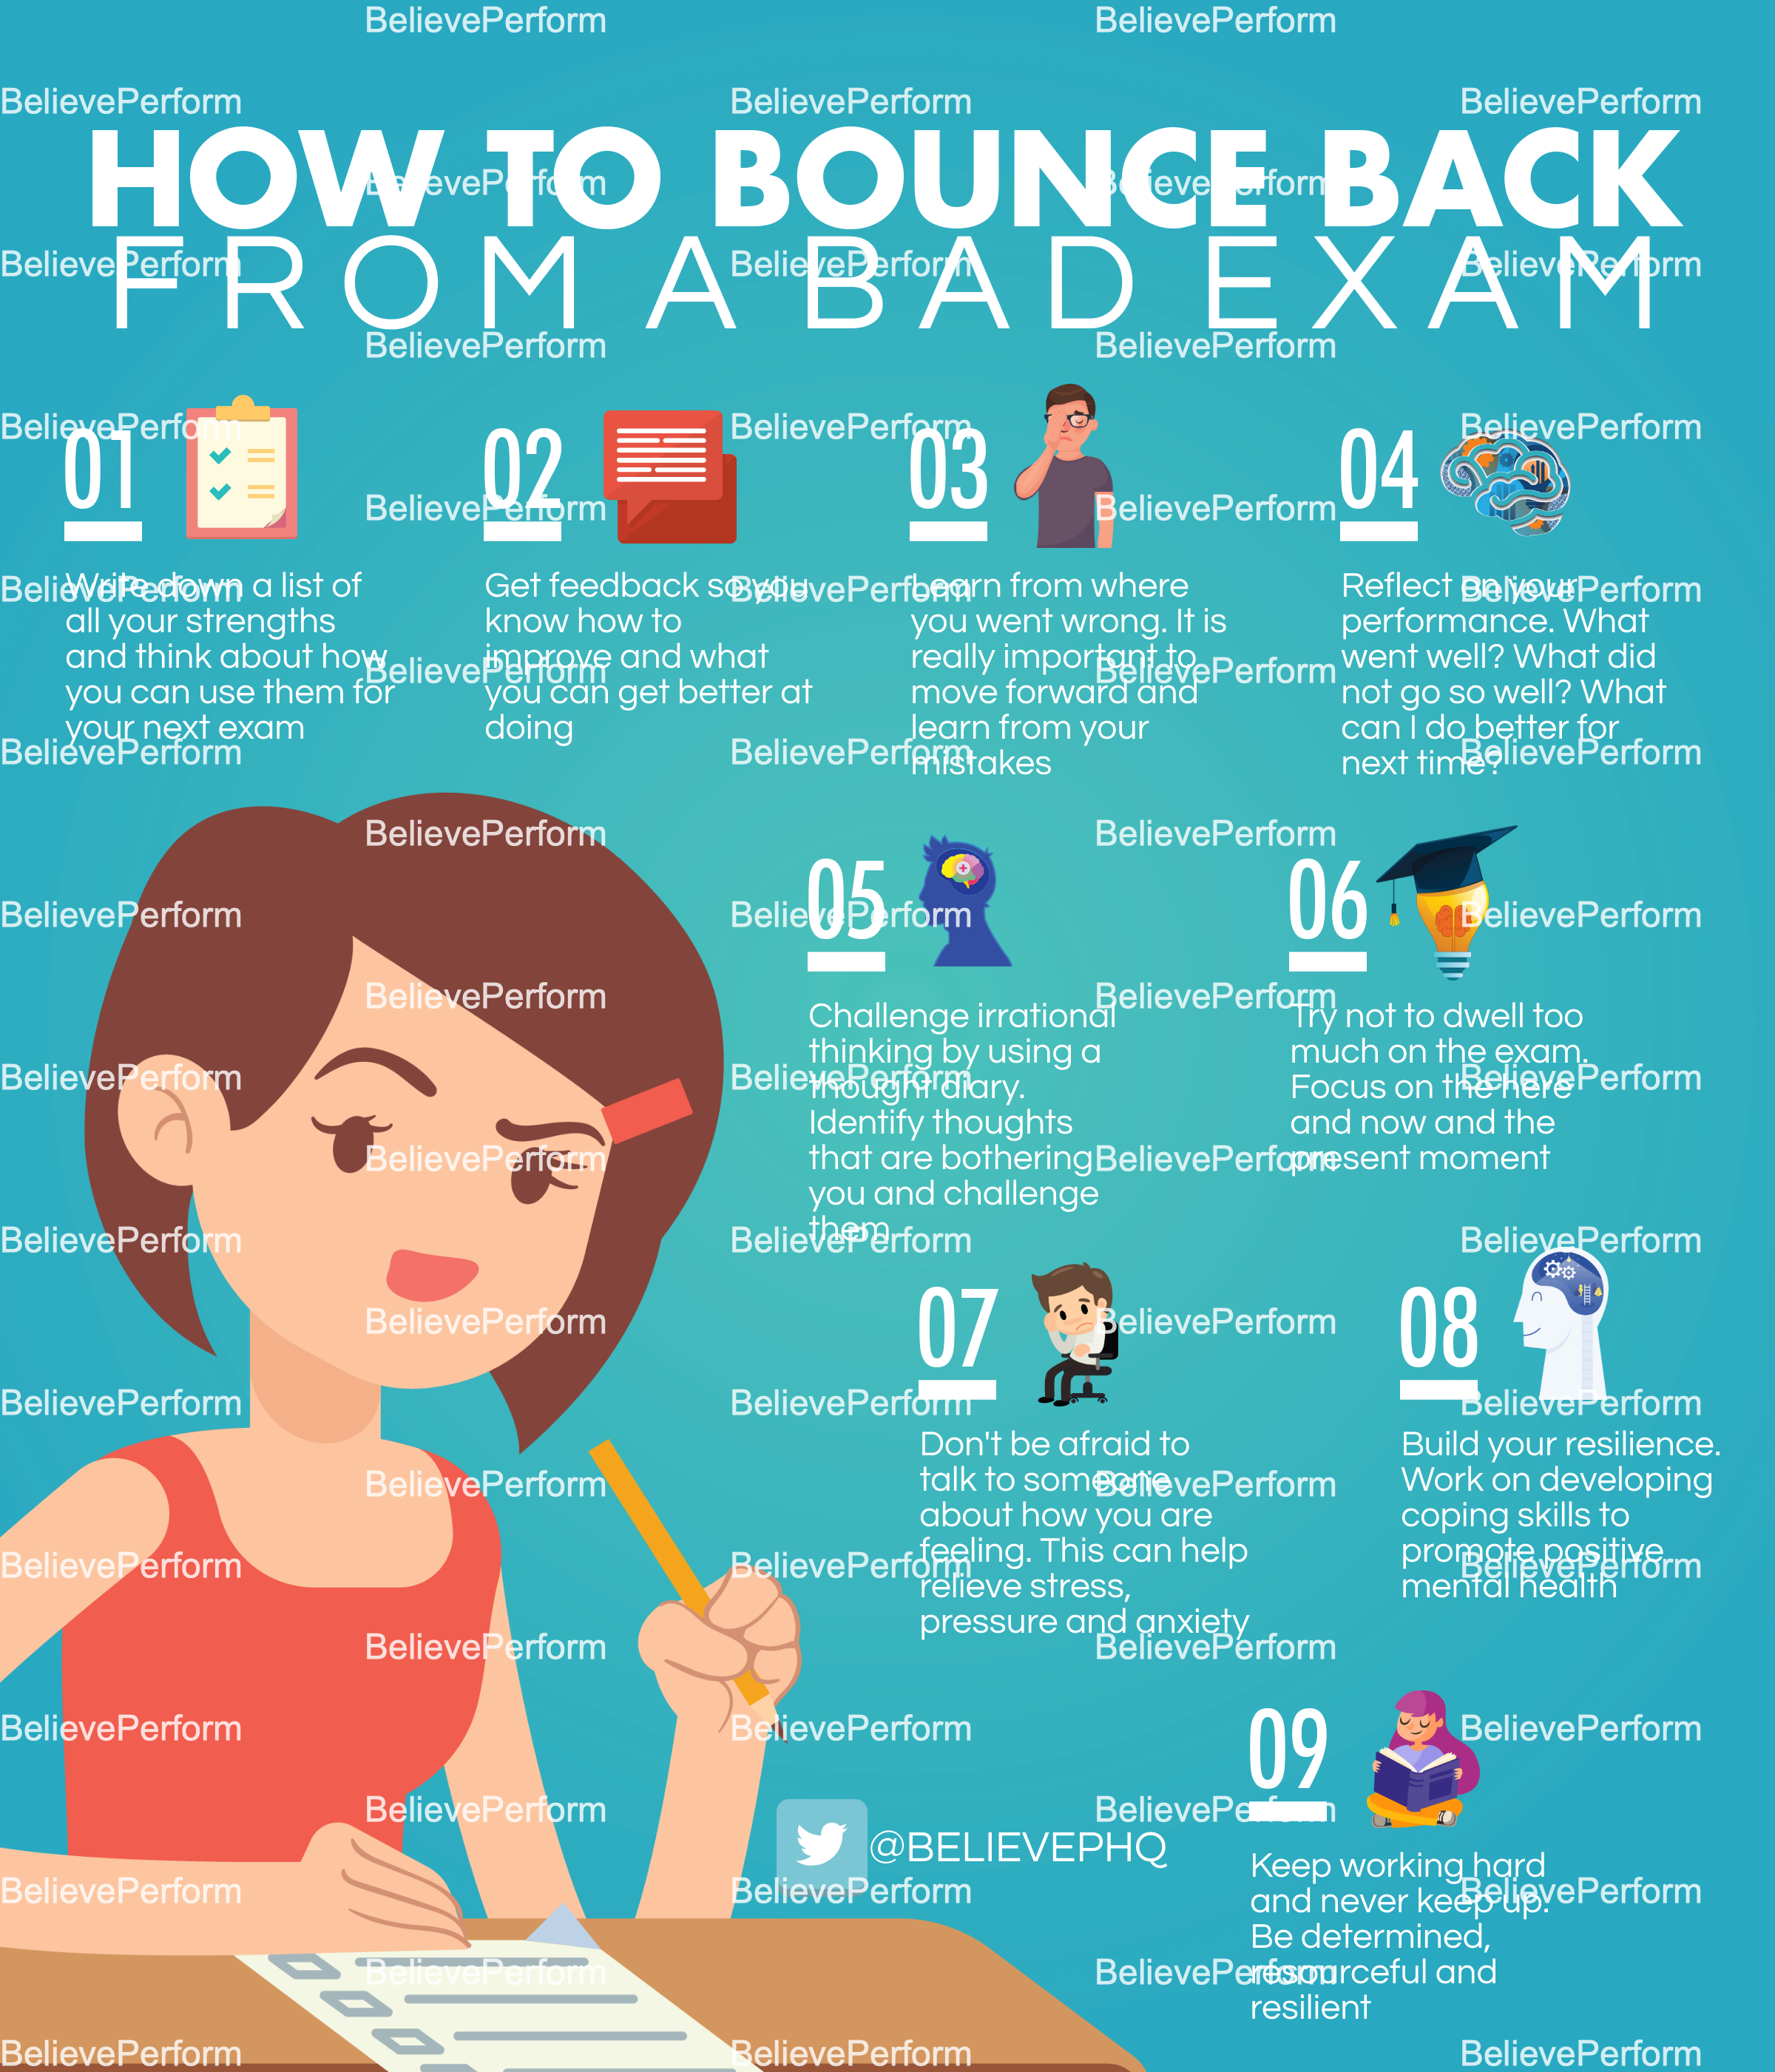 How to bounce back from a bad exam